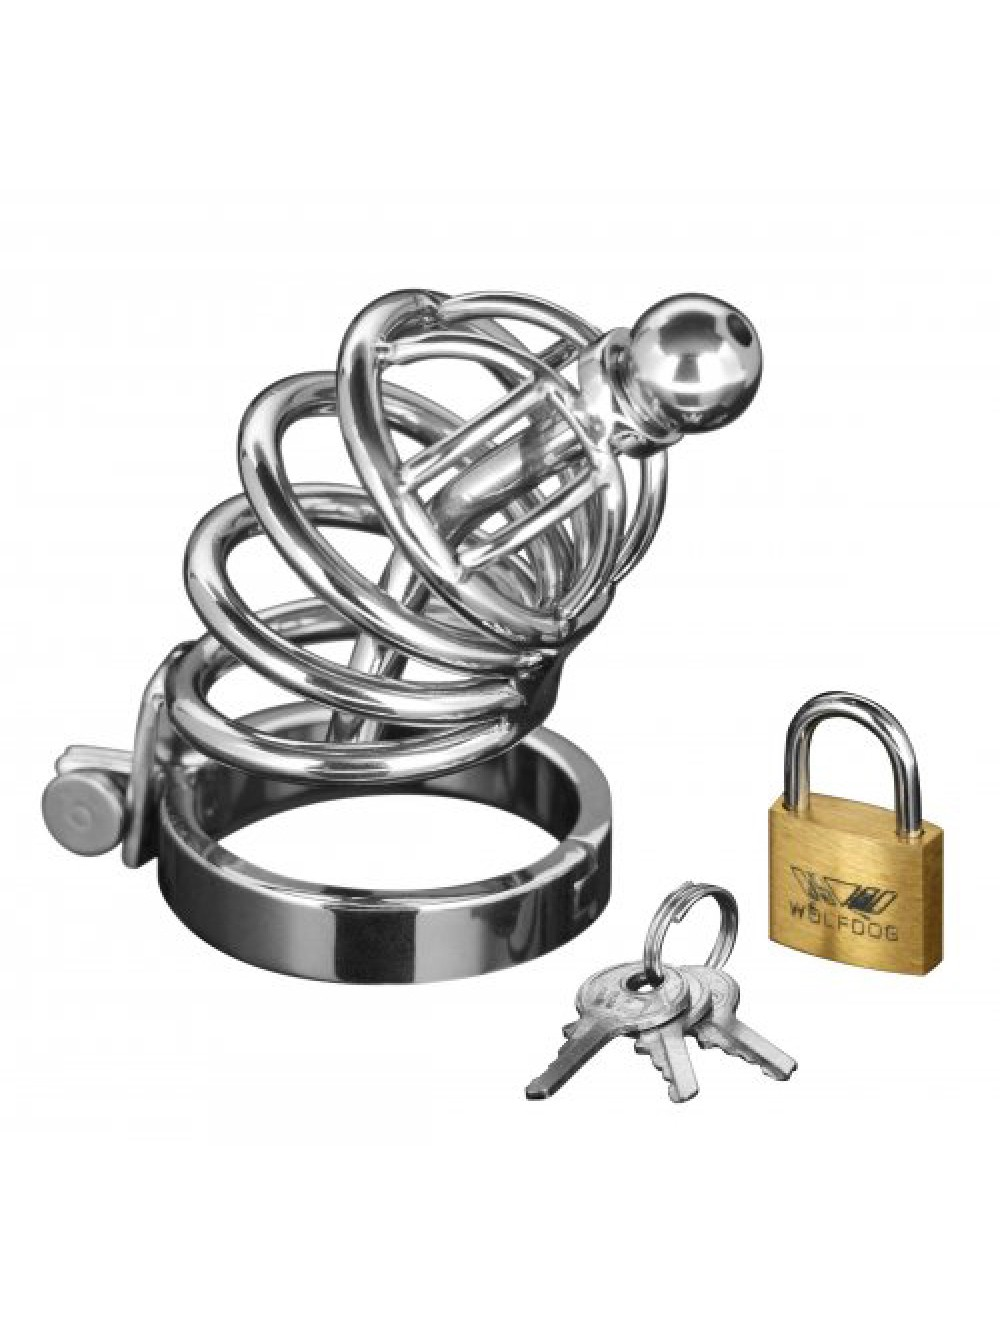 GABBIA DI CASTITA' ASYLUM 6 RING LOCKING CHASTITY CAGE